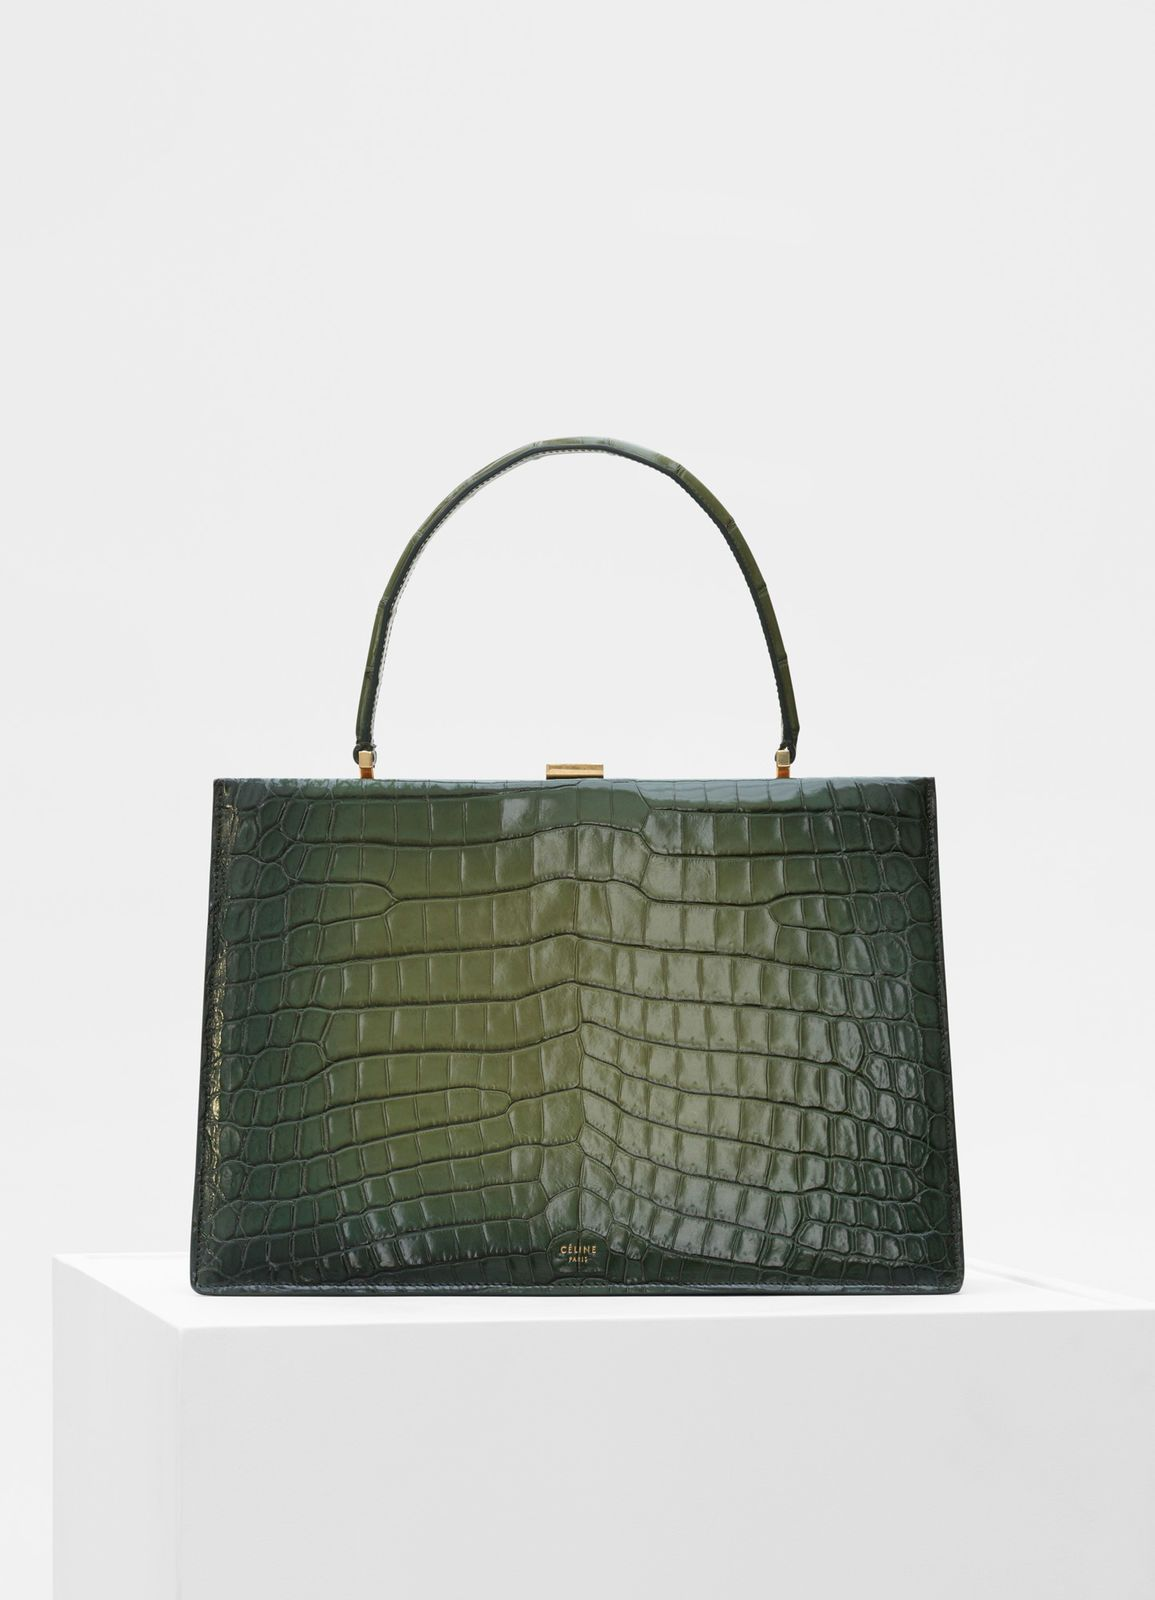 7aa4a8f3286f Céline - Medium Clasp bag in olive crocodile with patina